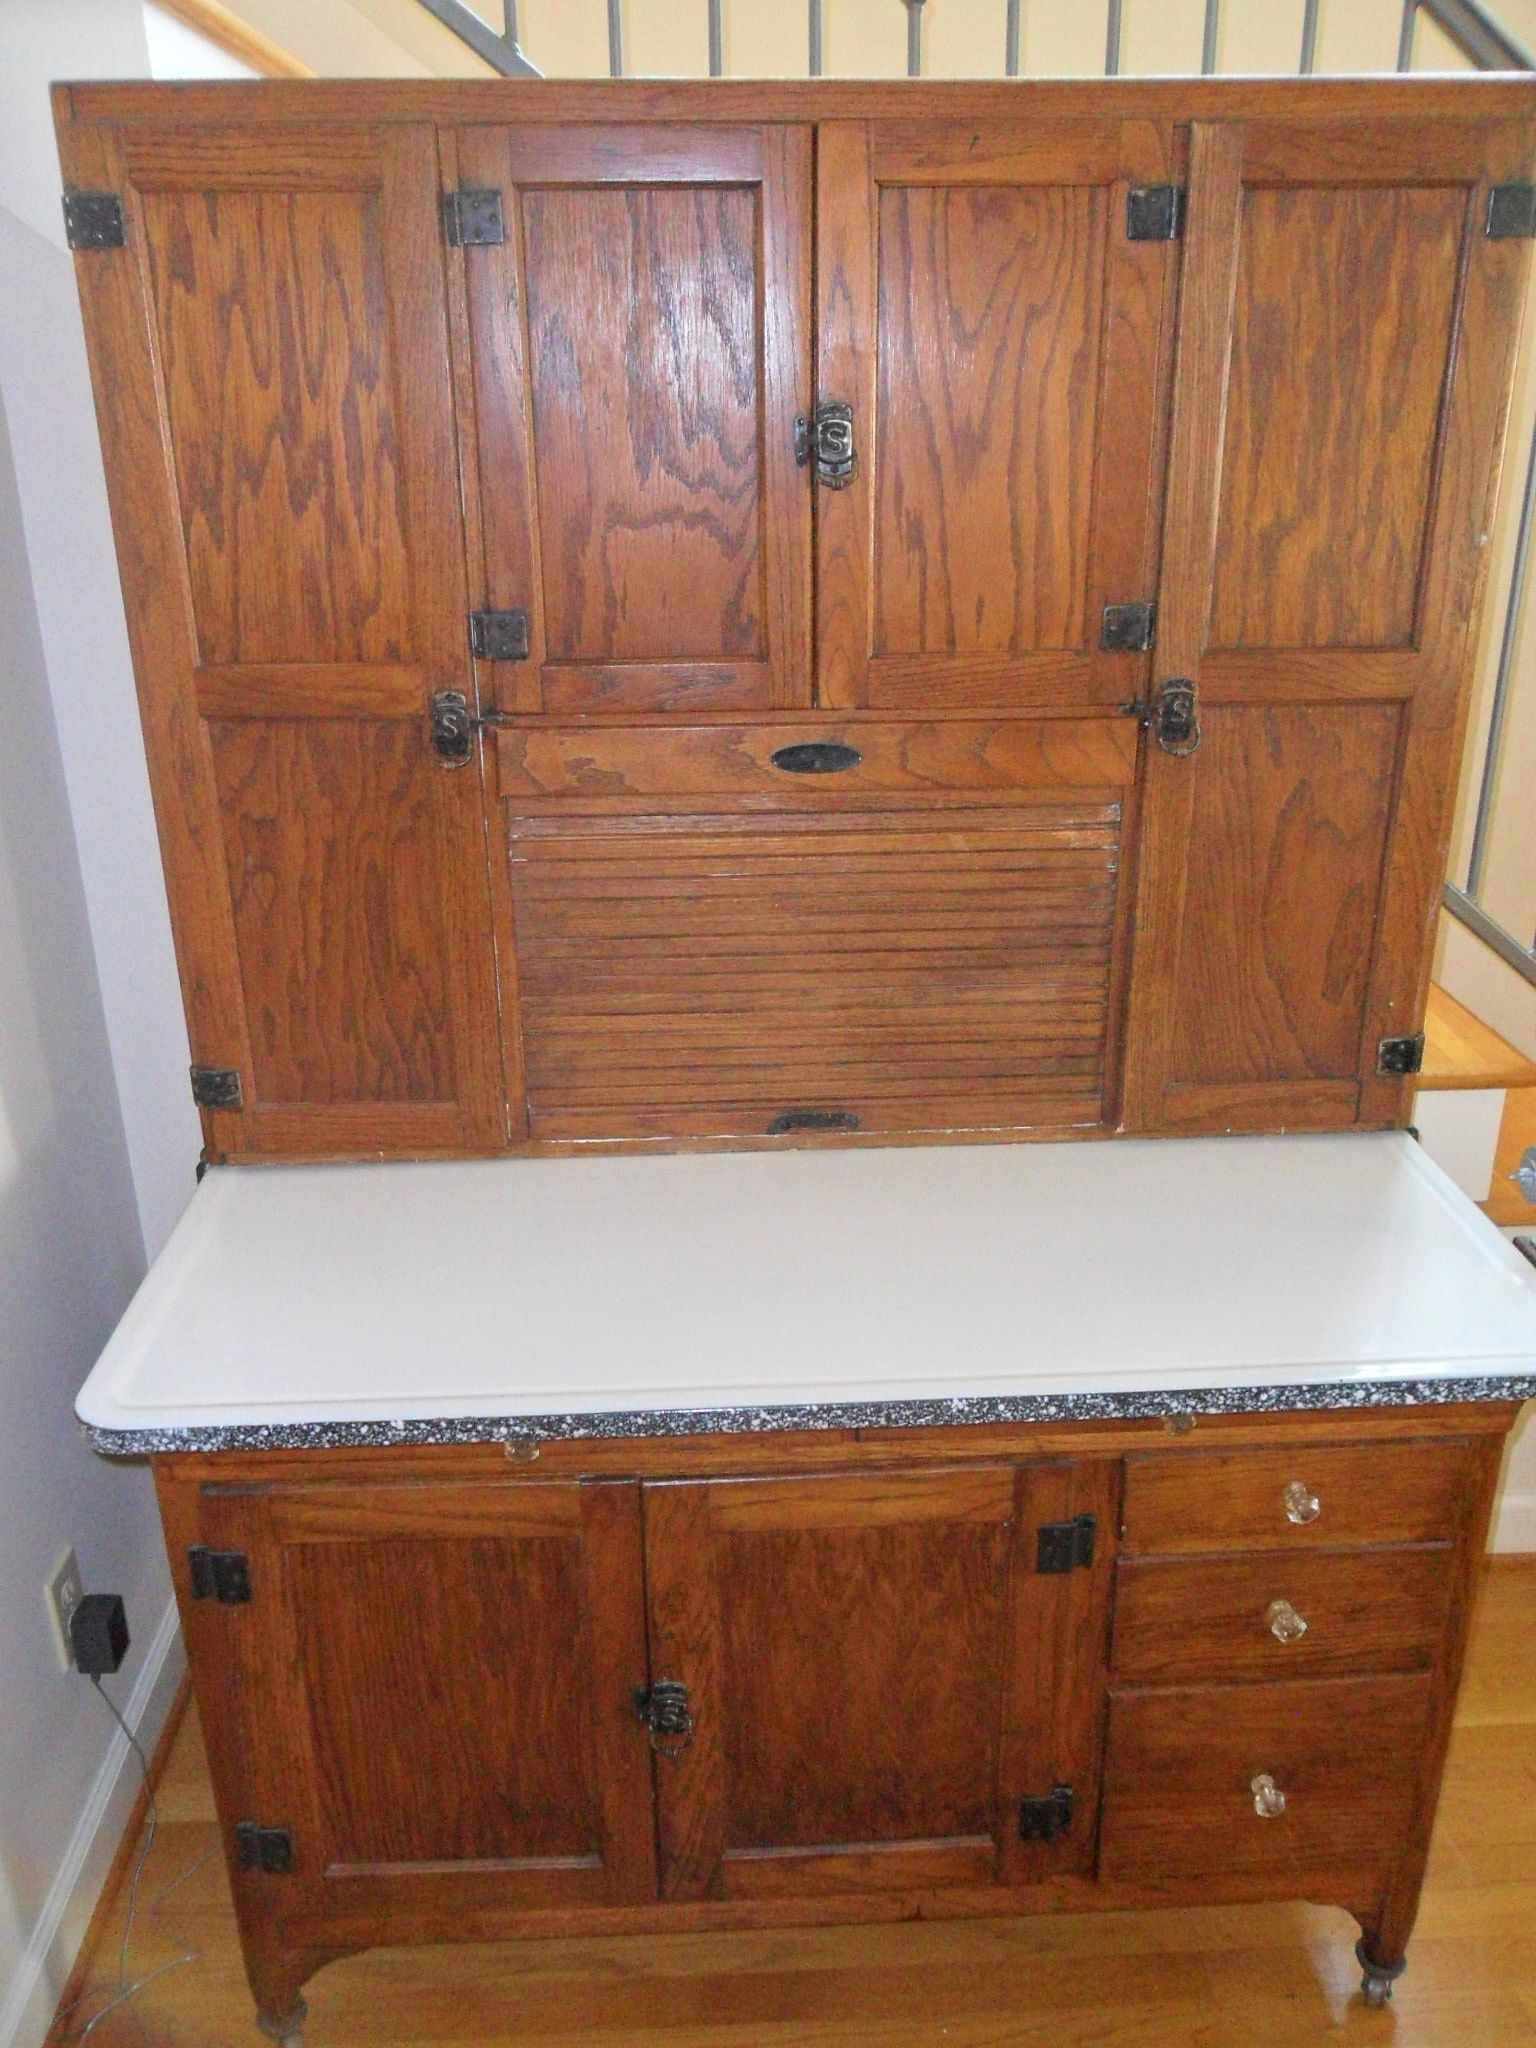 Antique Bakers Cabinet | Sellers Bakers Cabinet | Instappraisal - Antique Bakers Cabinet Sellers Bakers Cabinet Instappraisal